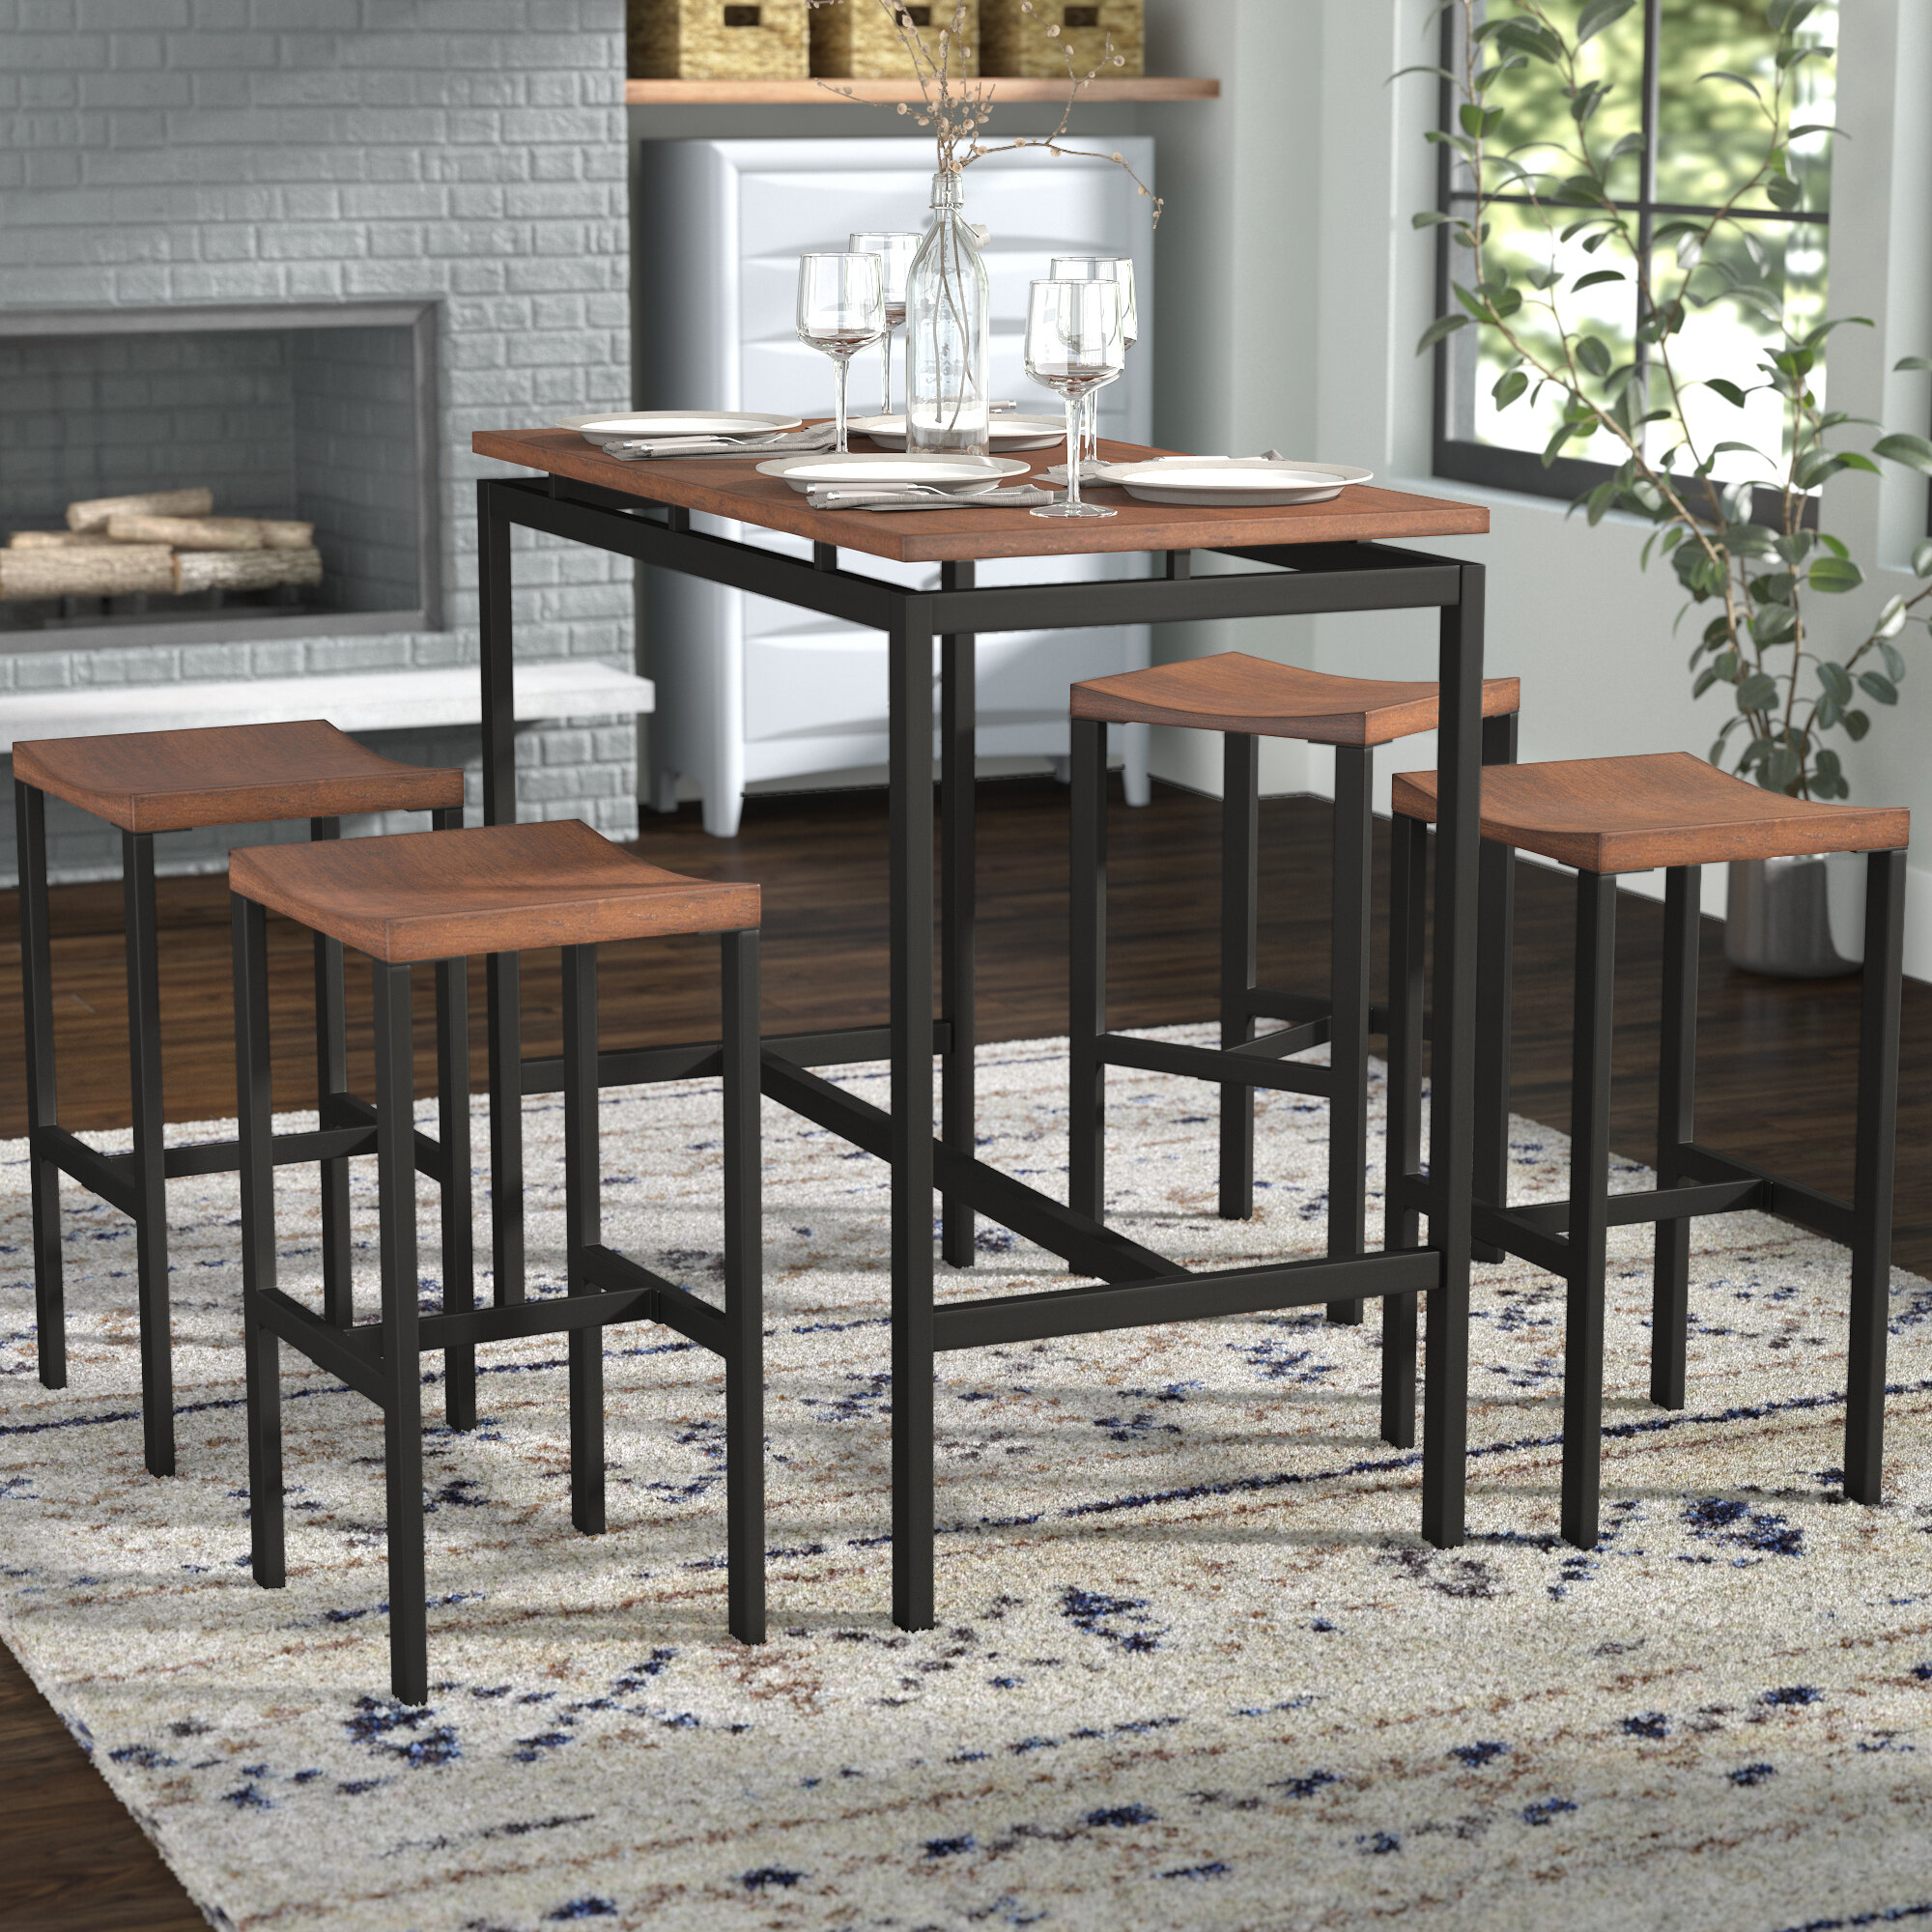 Brayden Studio Swigart 5 Piece Pub Table Set U0026 Reviews | Wayfair